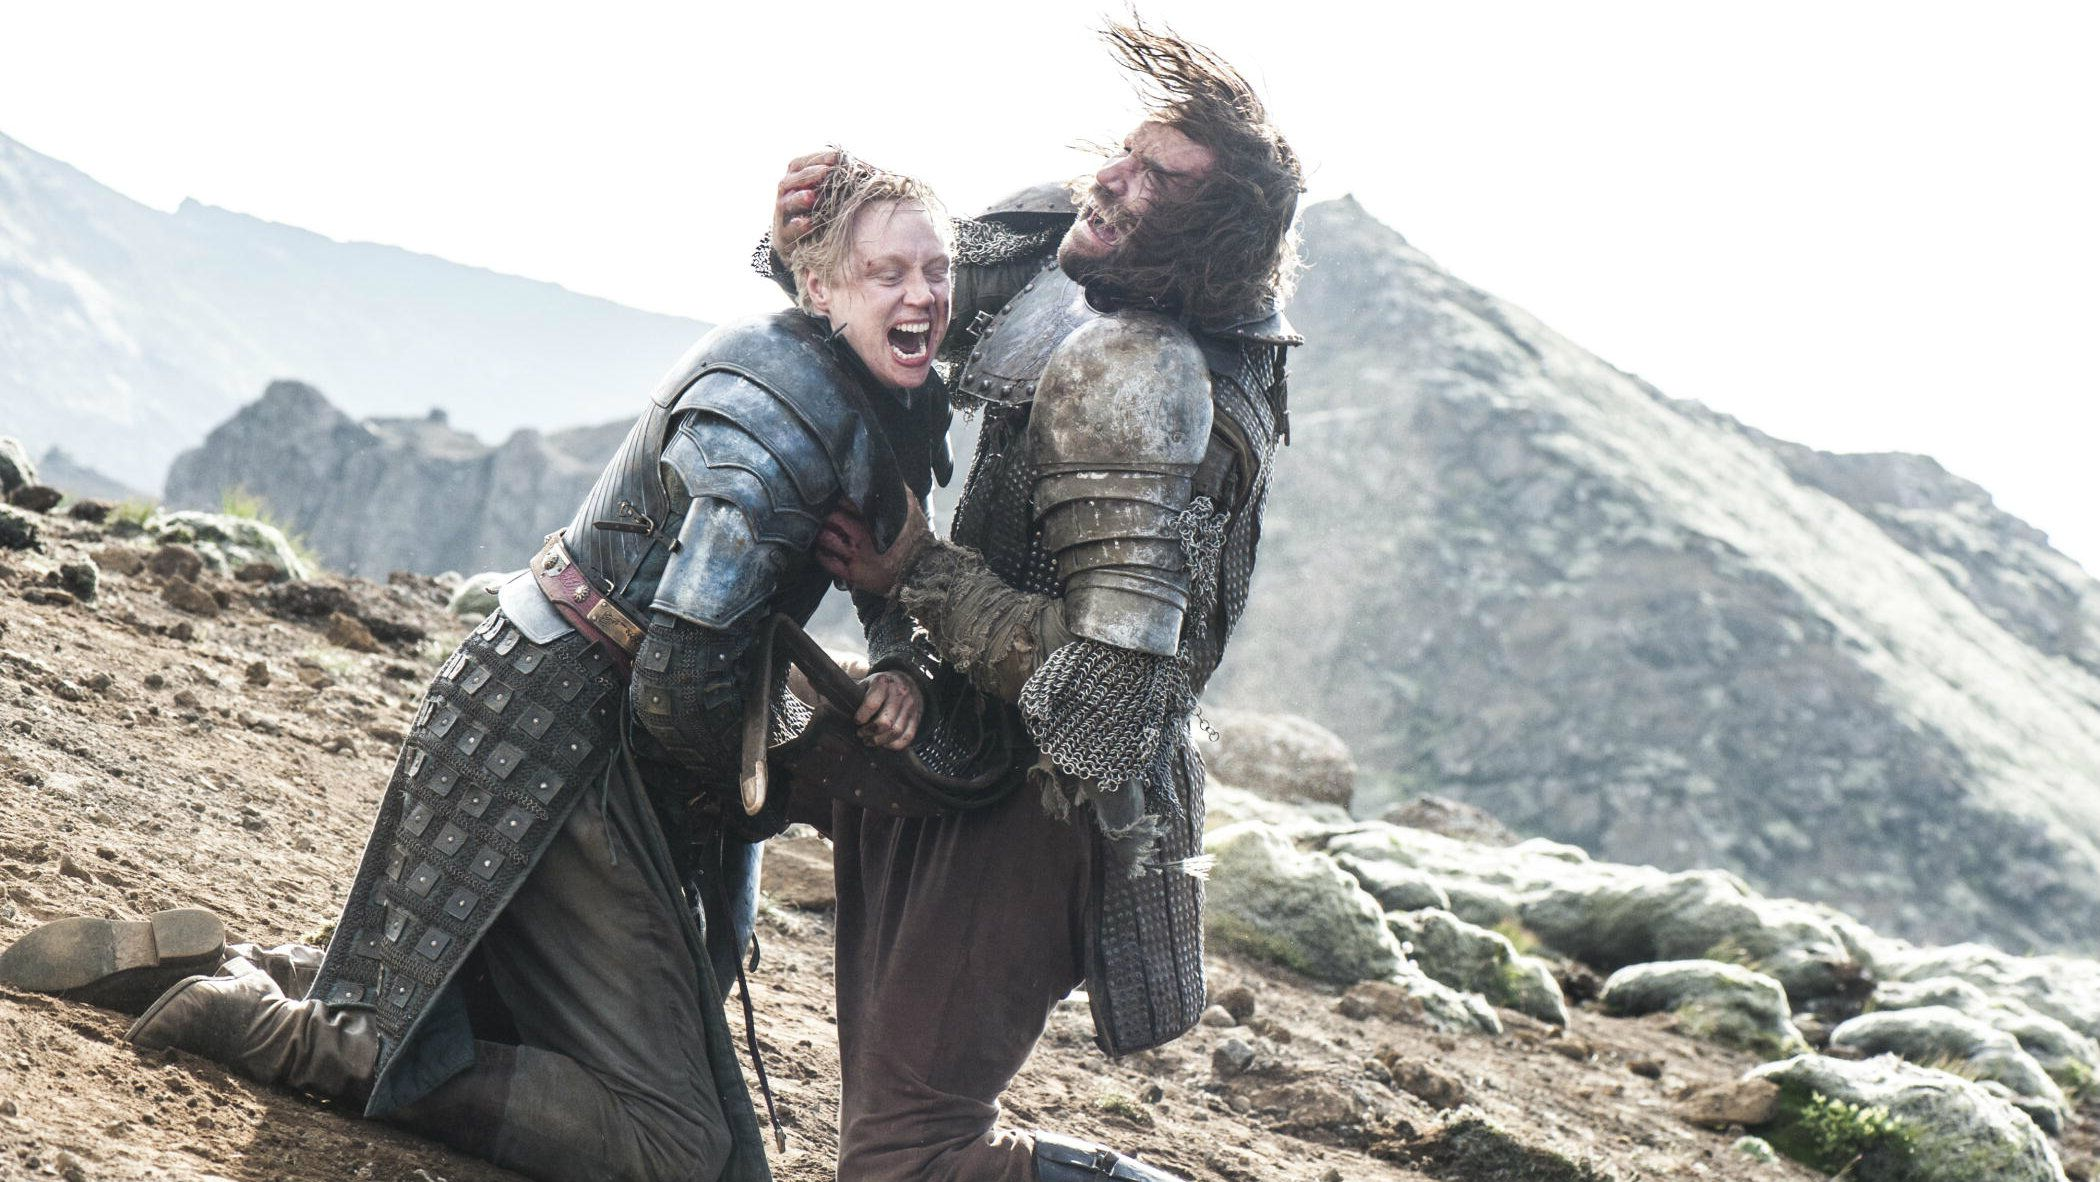 A scene from HBOs Game of Thrones